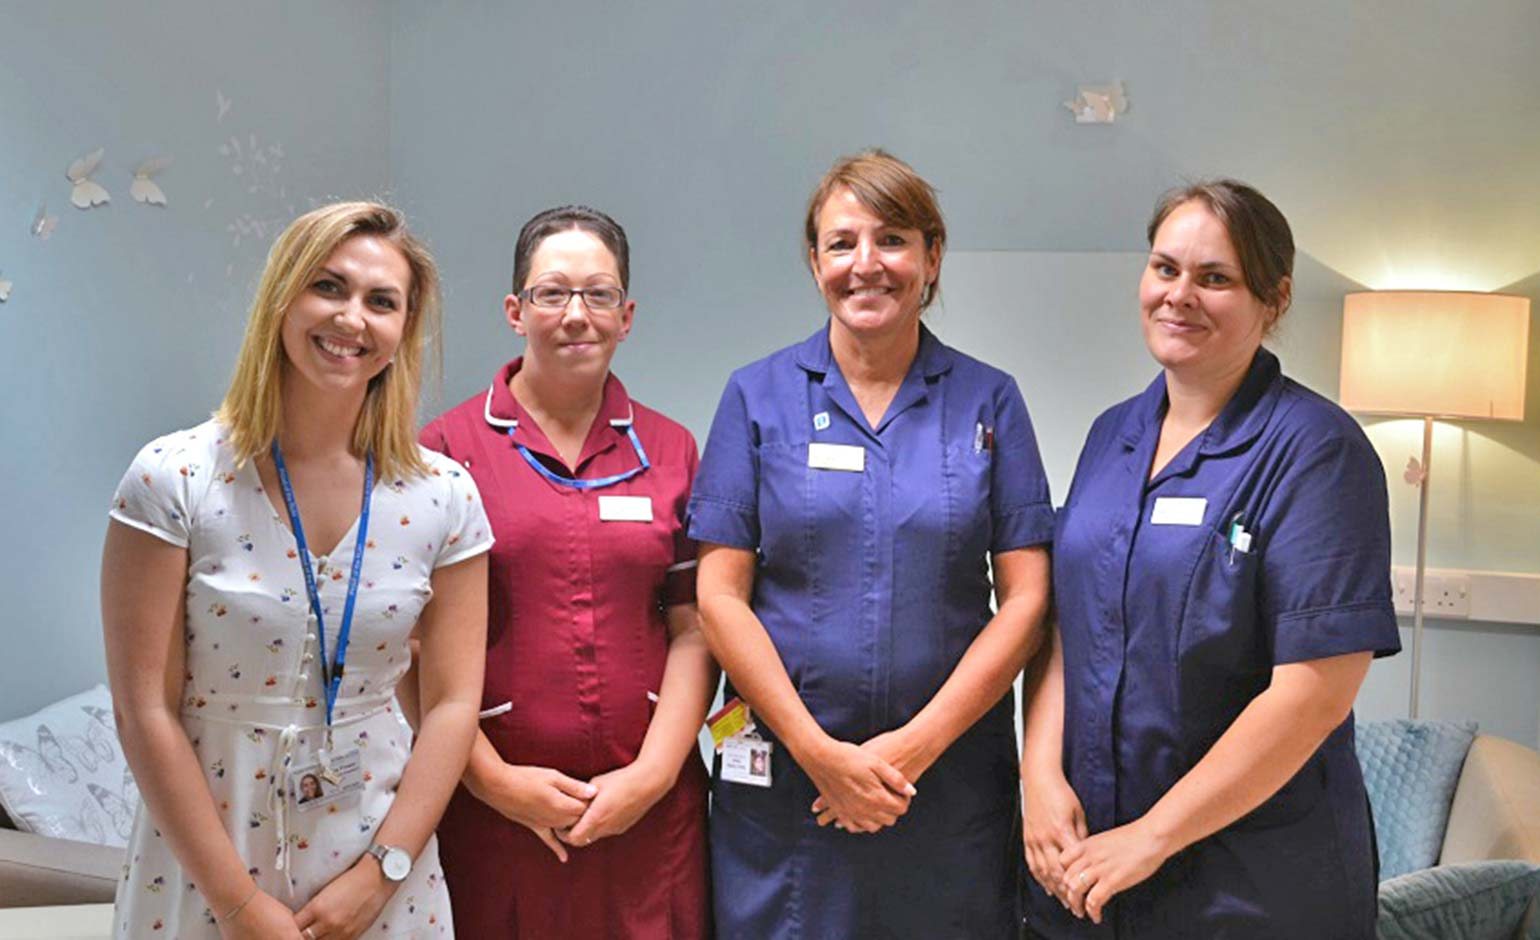 RUH storage room transformed into discreet space for relatives of patients